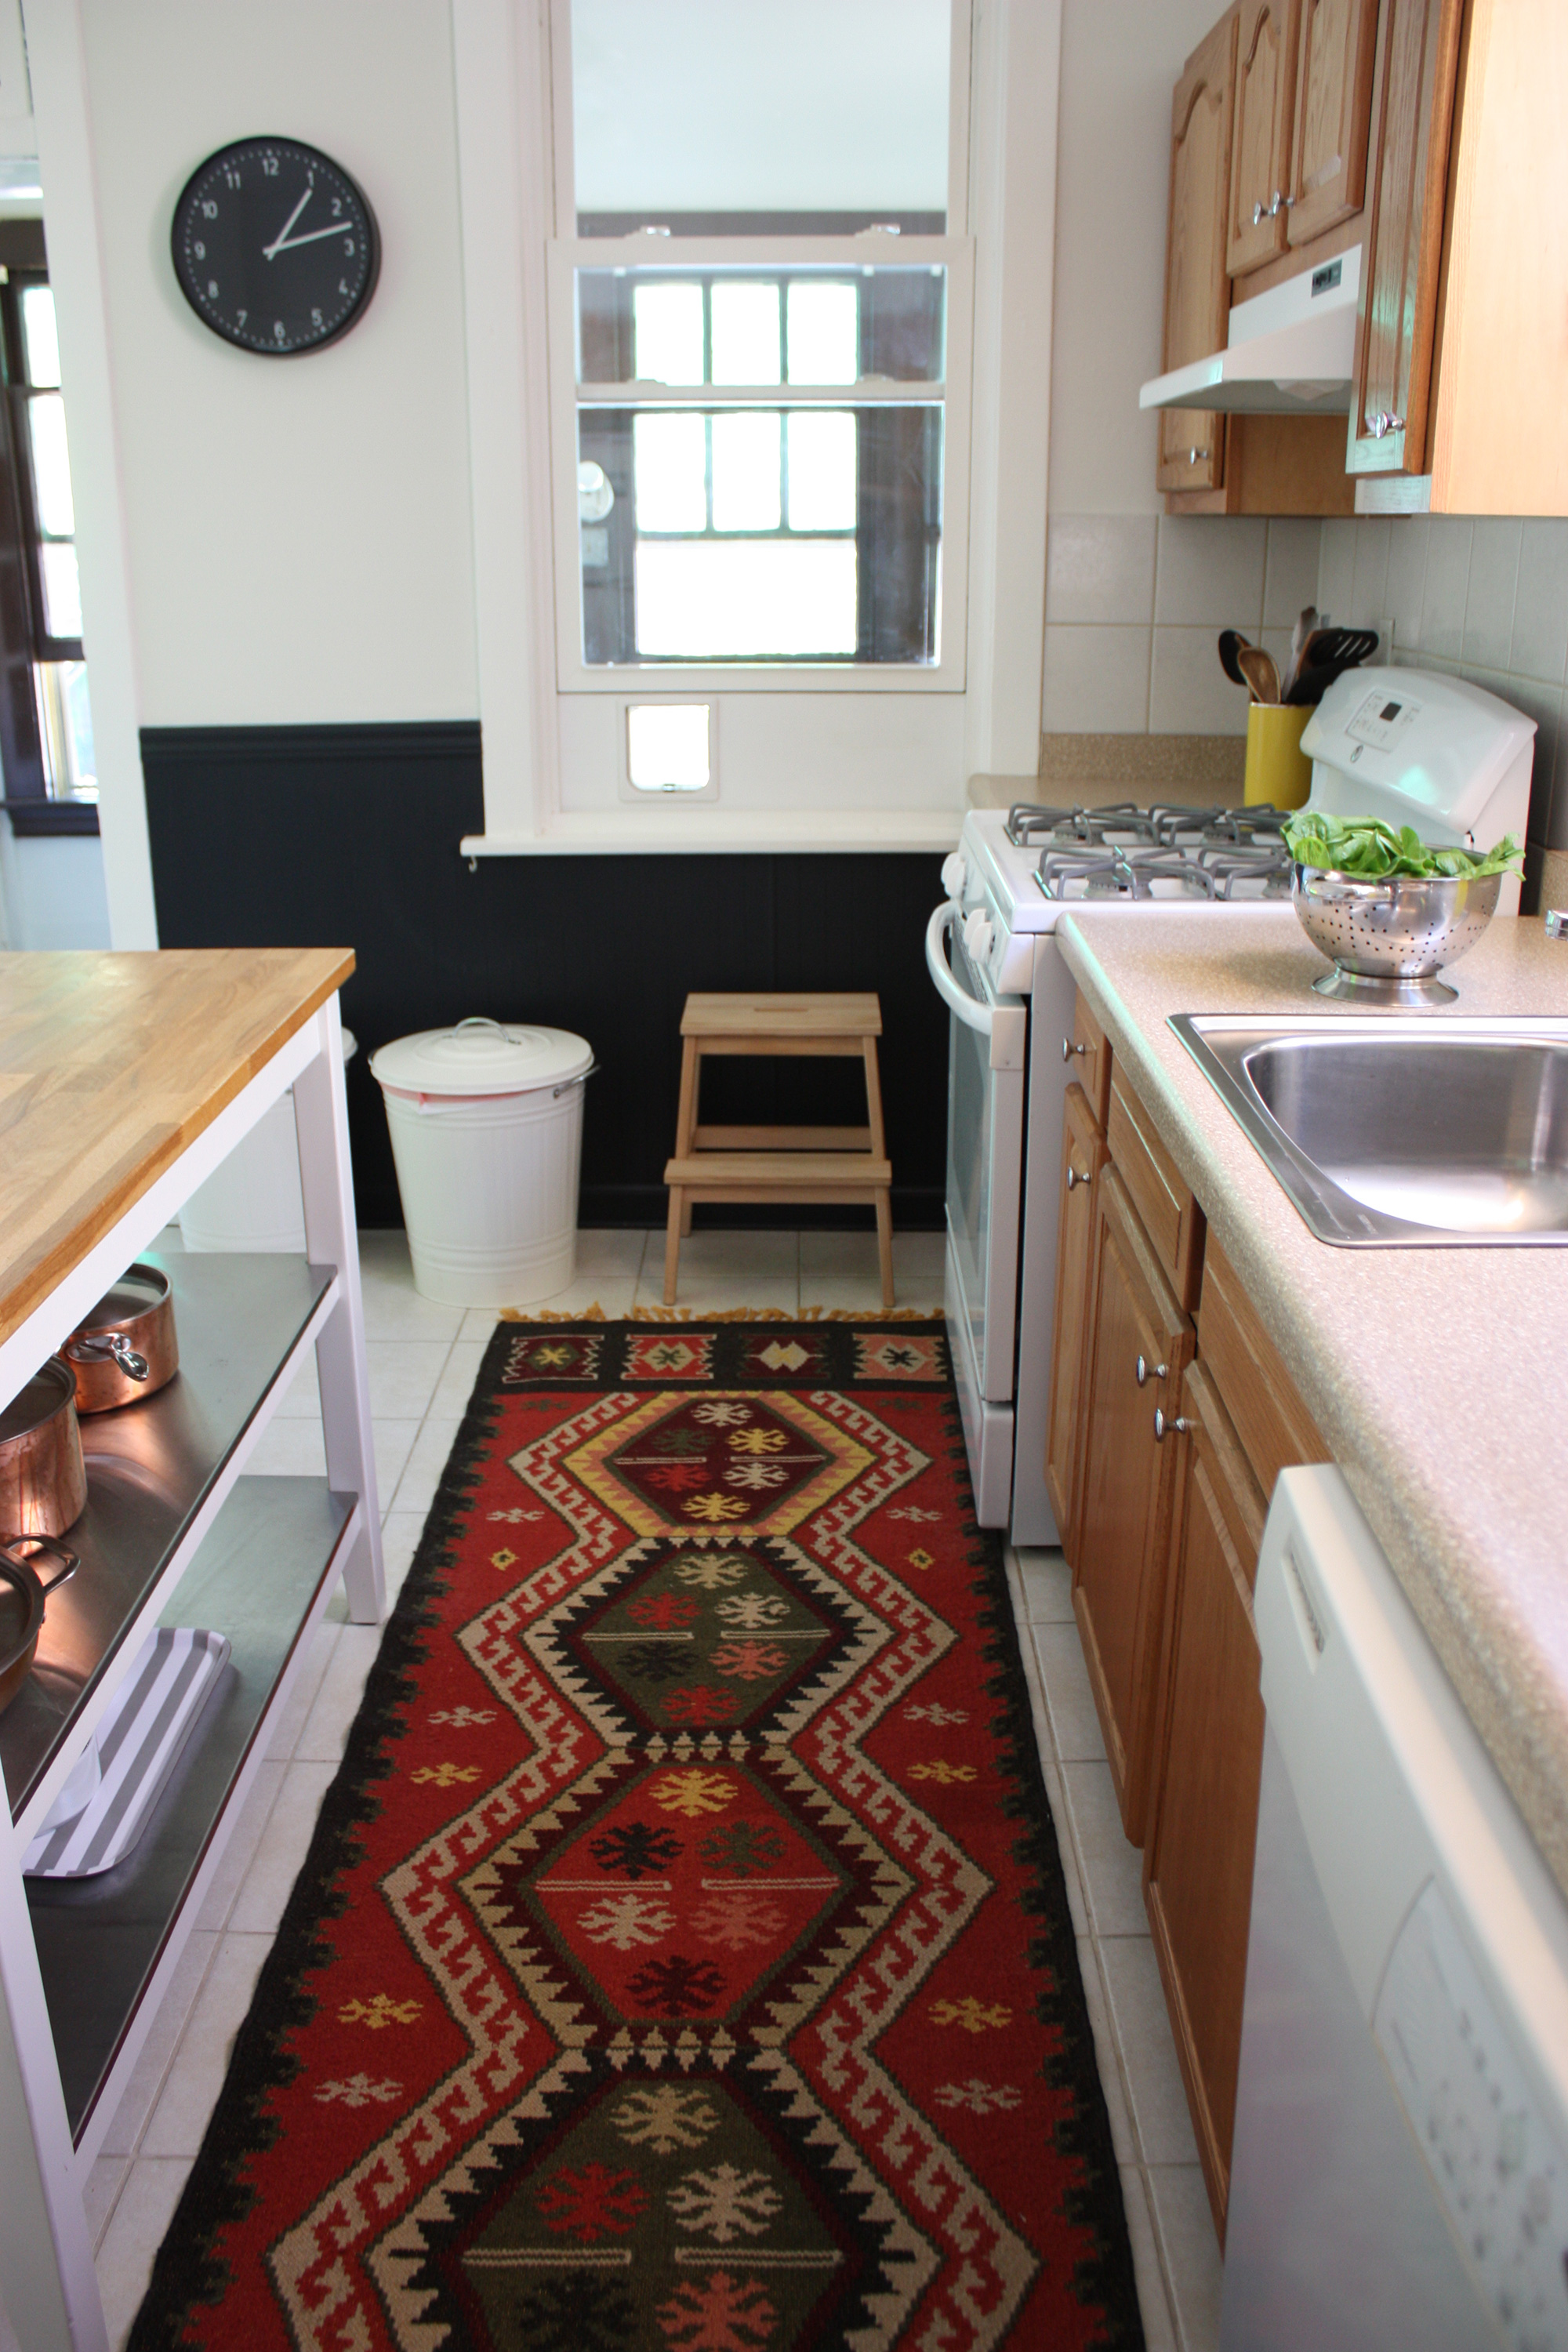 More than 9 Quick Rental Fixes for the Kitchen   Apartment Therapy